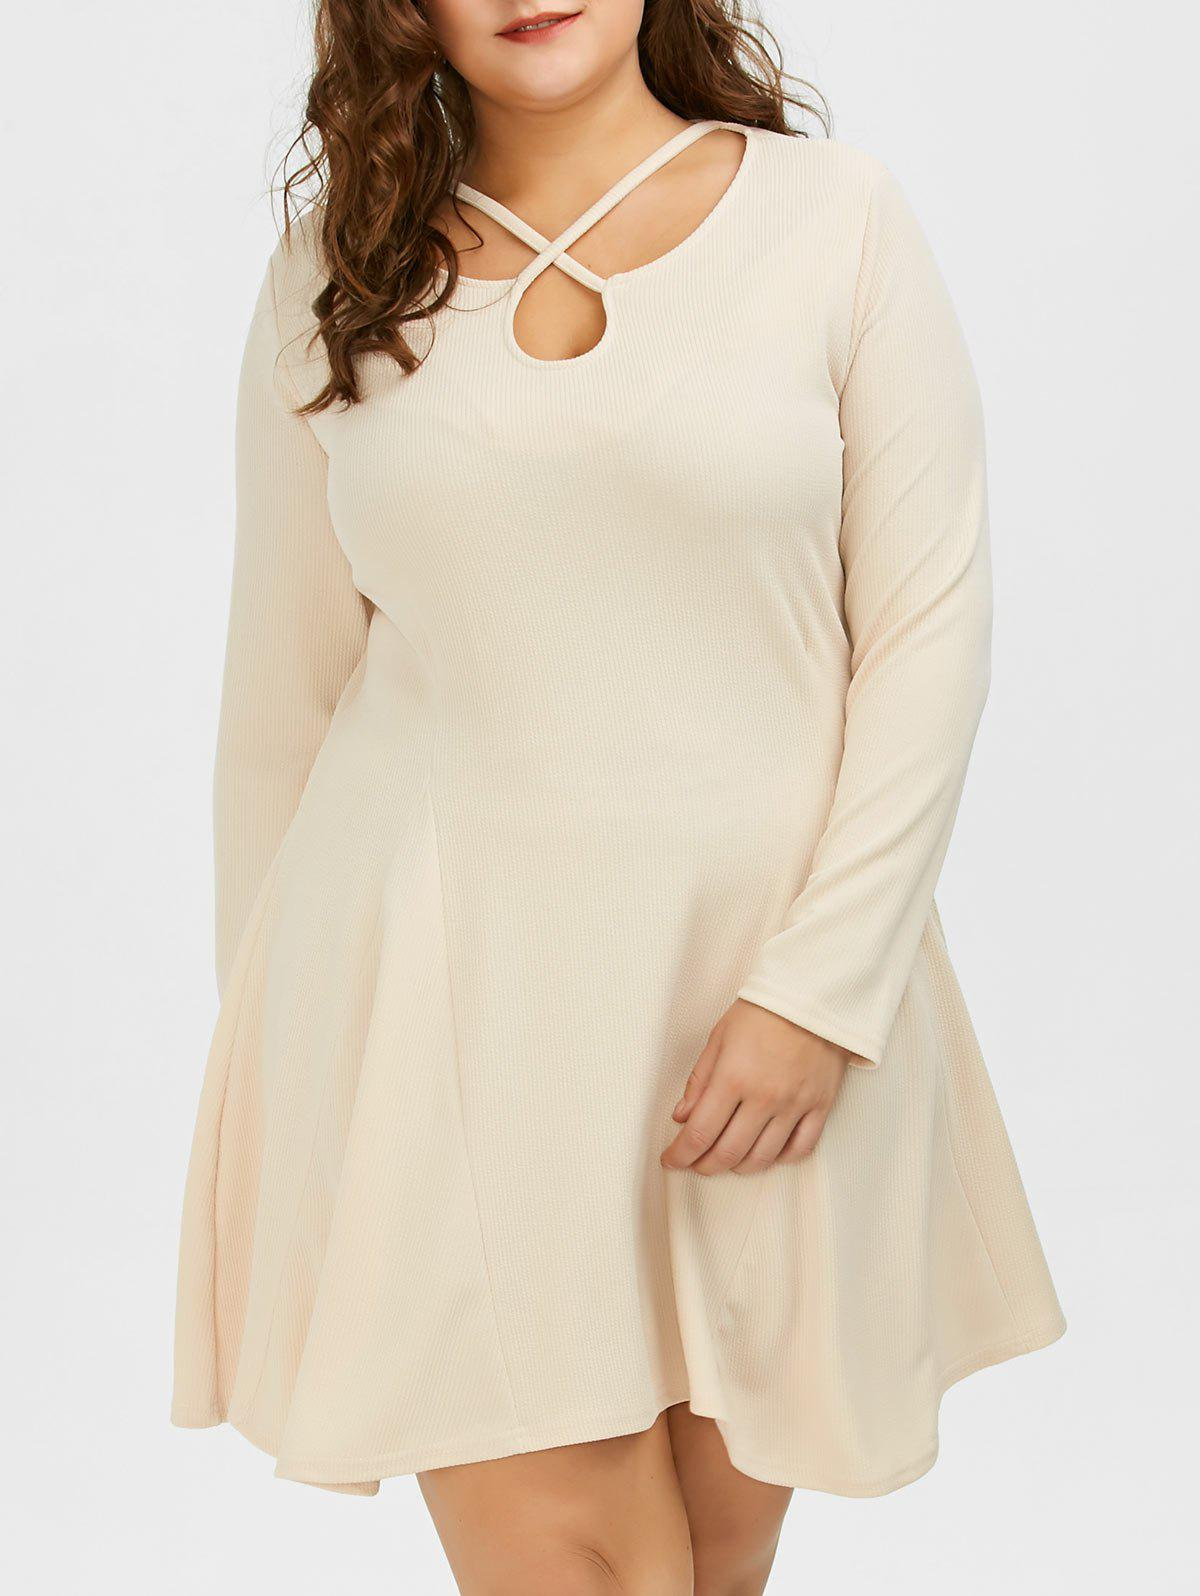 Cutout Plus Size Skater Dress with Long Sleeves